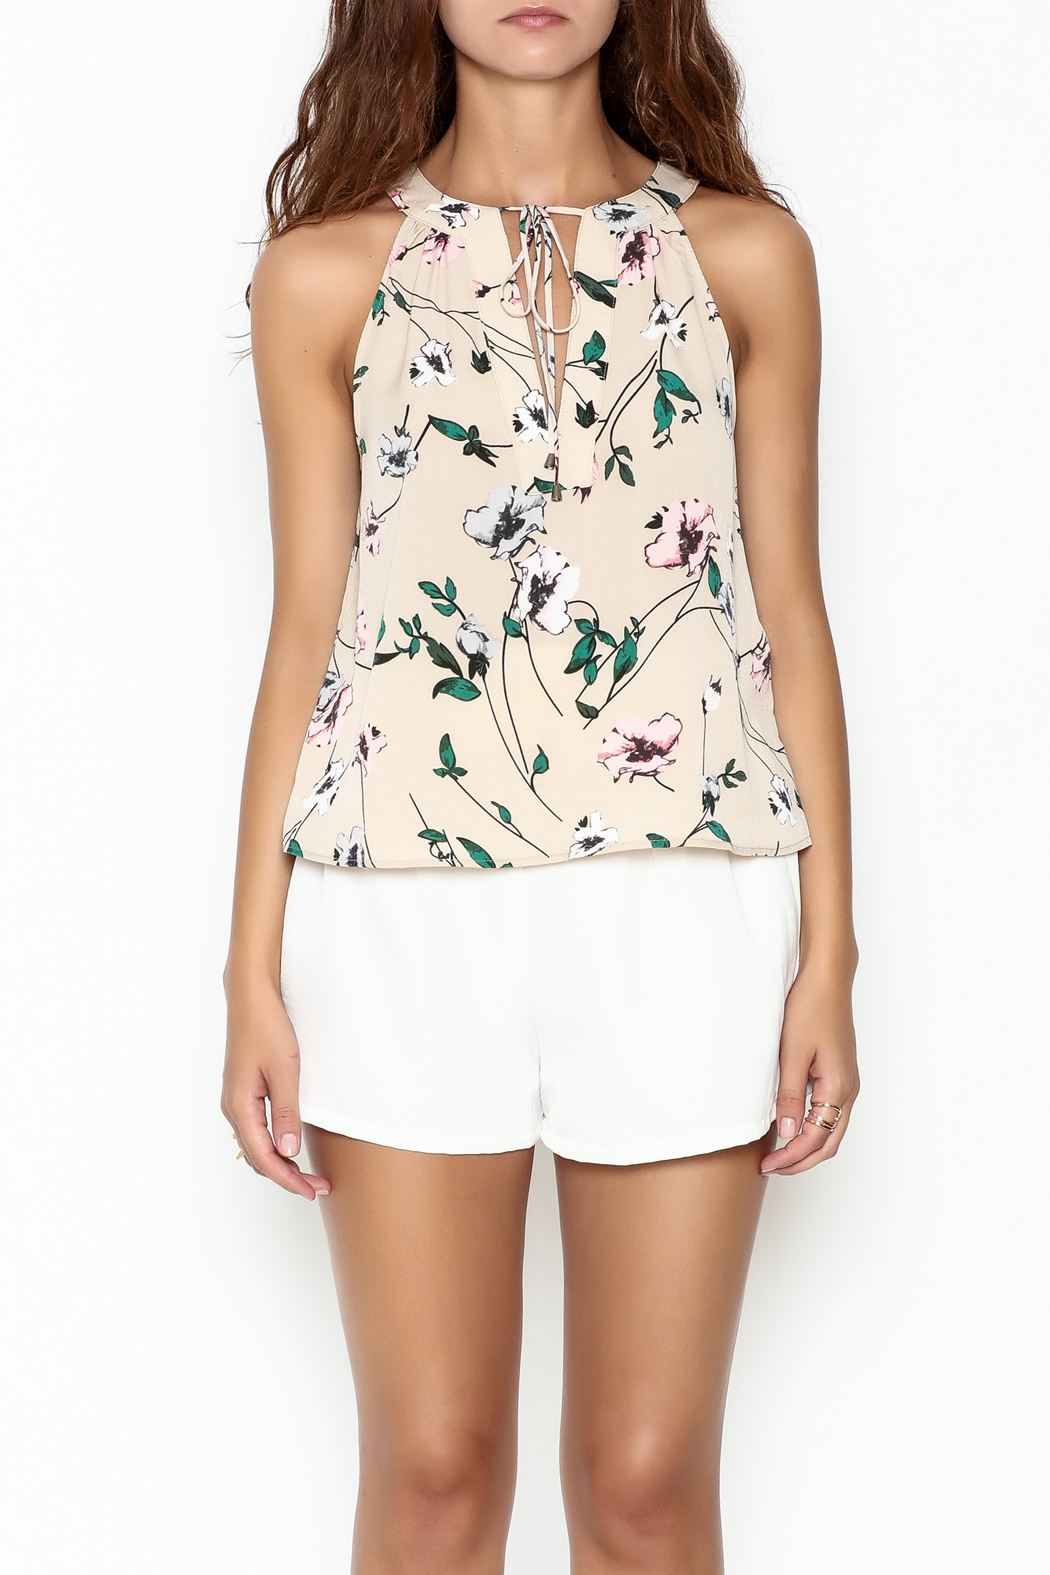 Everly Floral Halter Top - Front Full Image